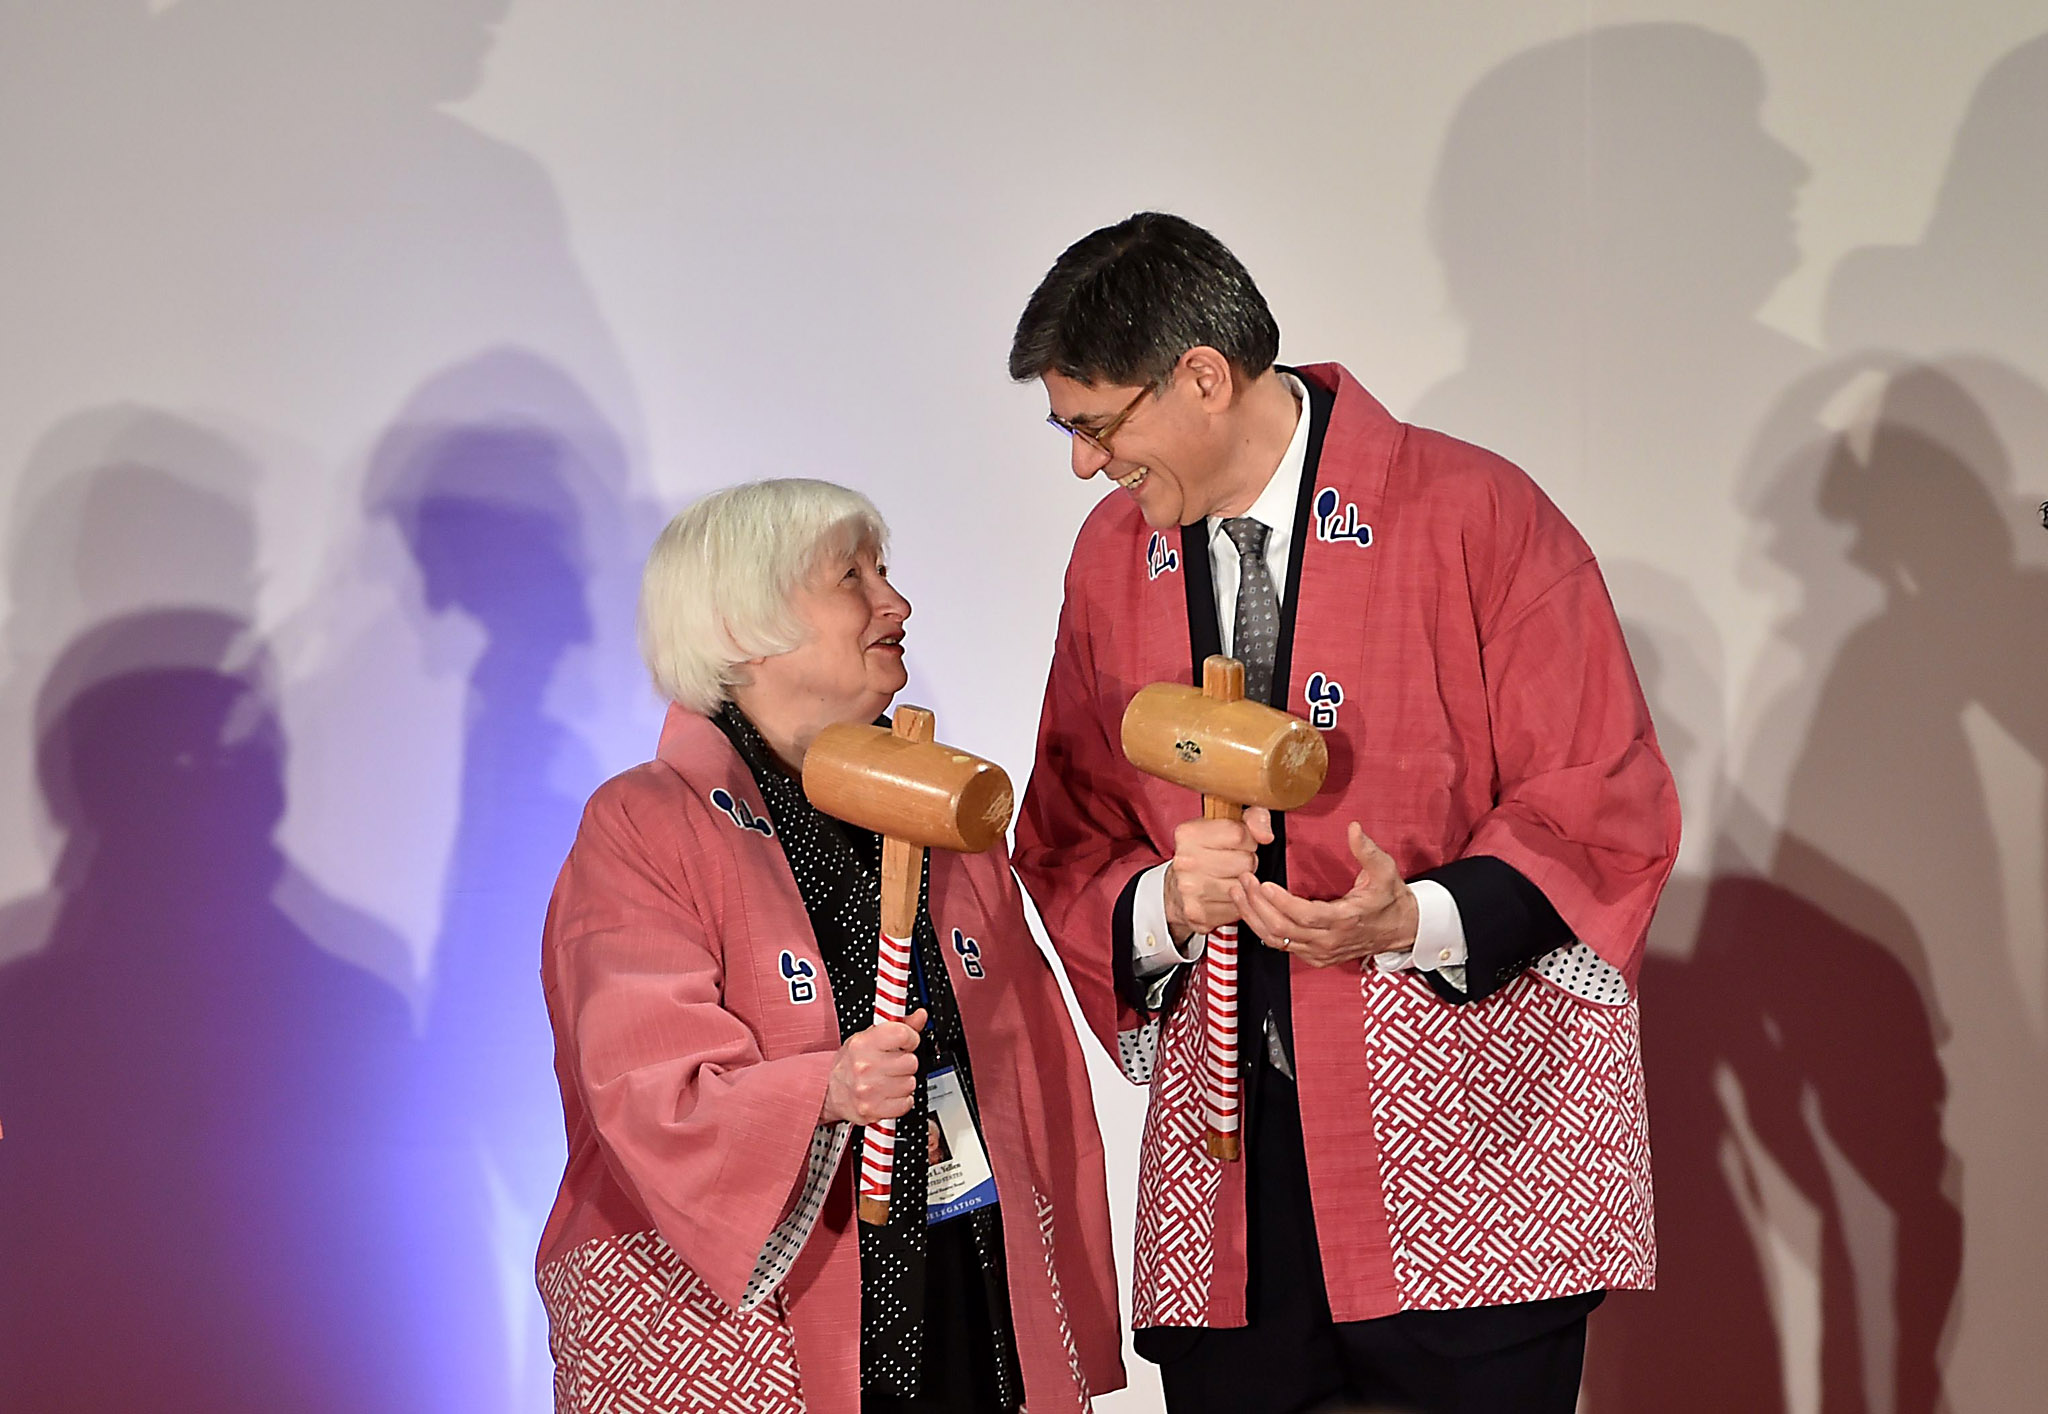 Chair of the Board of Governors of the F...Chair of the Board of Governors of the Federal Reserve System Janet L. Yellen (L) chats with US Secretary of the Treasury Jacob J. Lew (C) during a welcome reception hosted by the City of Sendai on May 19, 2016. The group -- including US Treasury Secretary Jacob Lew and European Central Bank President Mario Draghi -- will converge at a hot spring town north of Tokyo where two days of meetings kick off from May 20. / AFP PHOTO / KAZUHIRO NOGIKAZUHIRO NOGI/AFP/Getty Images